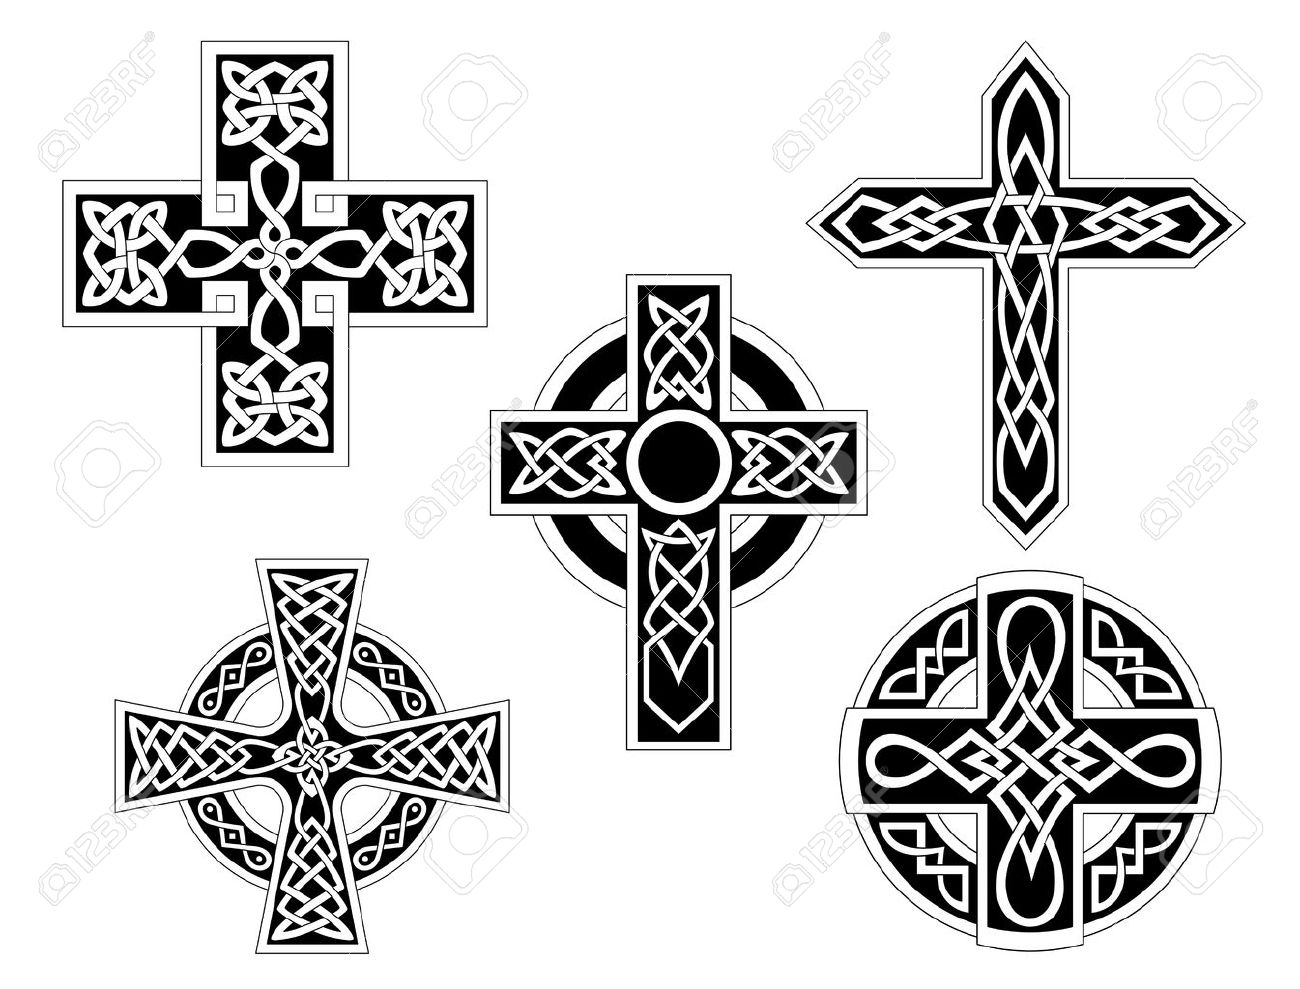 Set of irish celtic crosses vector illustration royalty free set of irish celtic crosses vector illustration stock vector 22473391 biocorpaavc Image collections